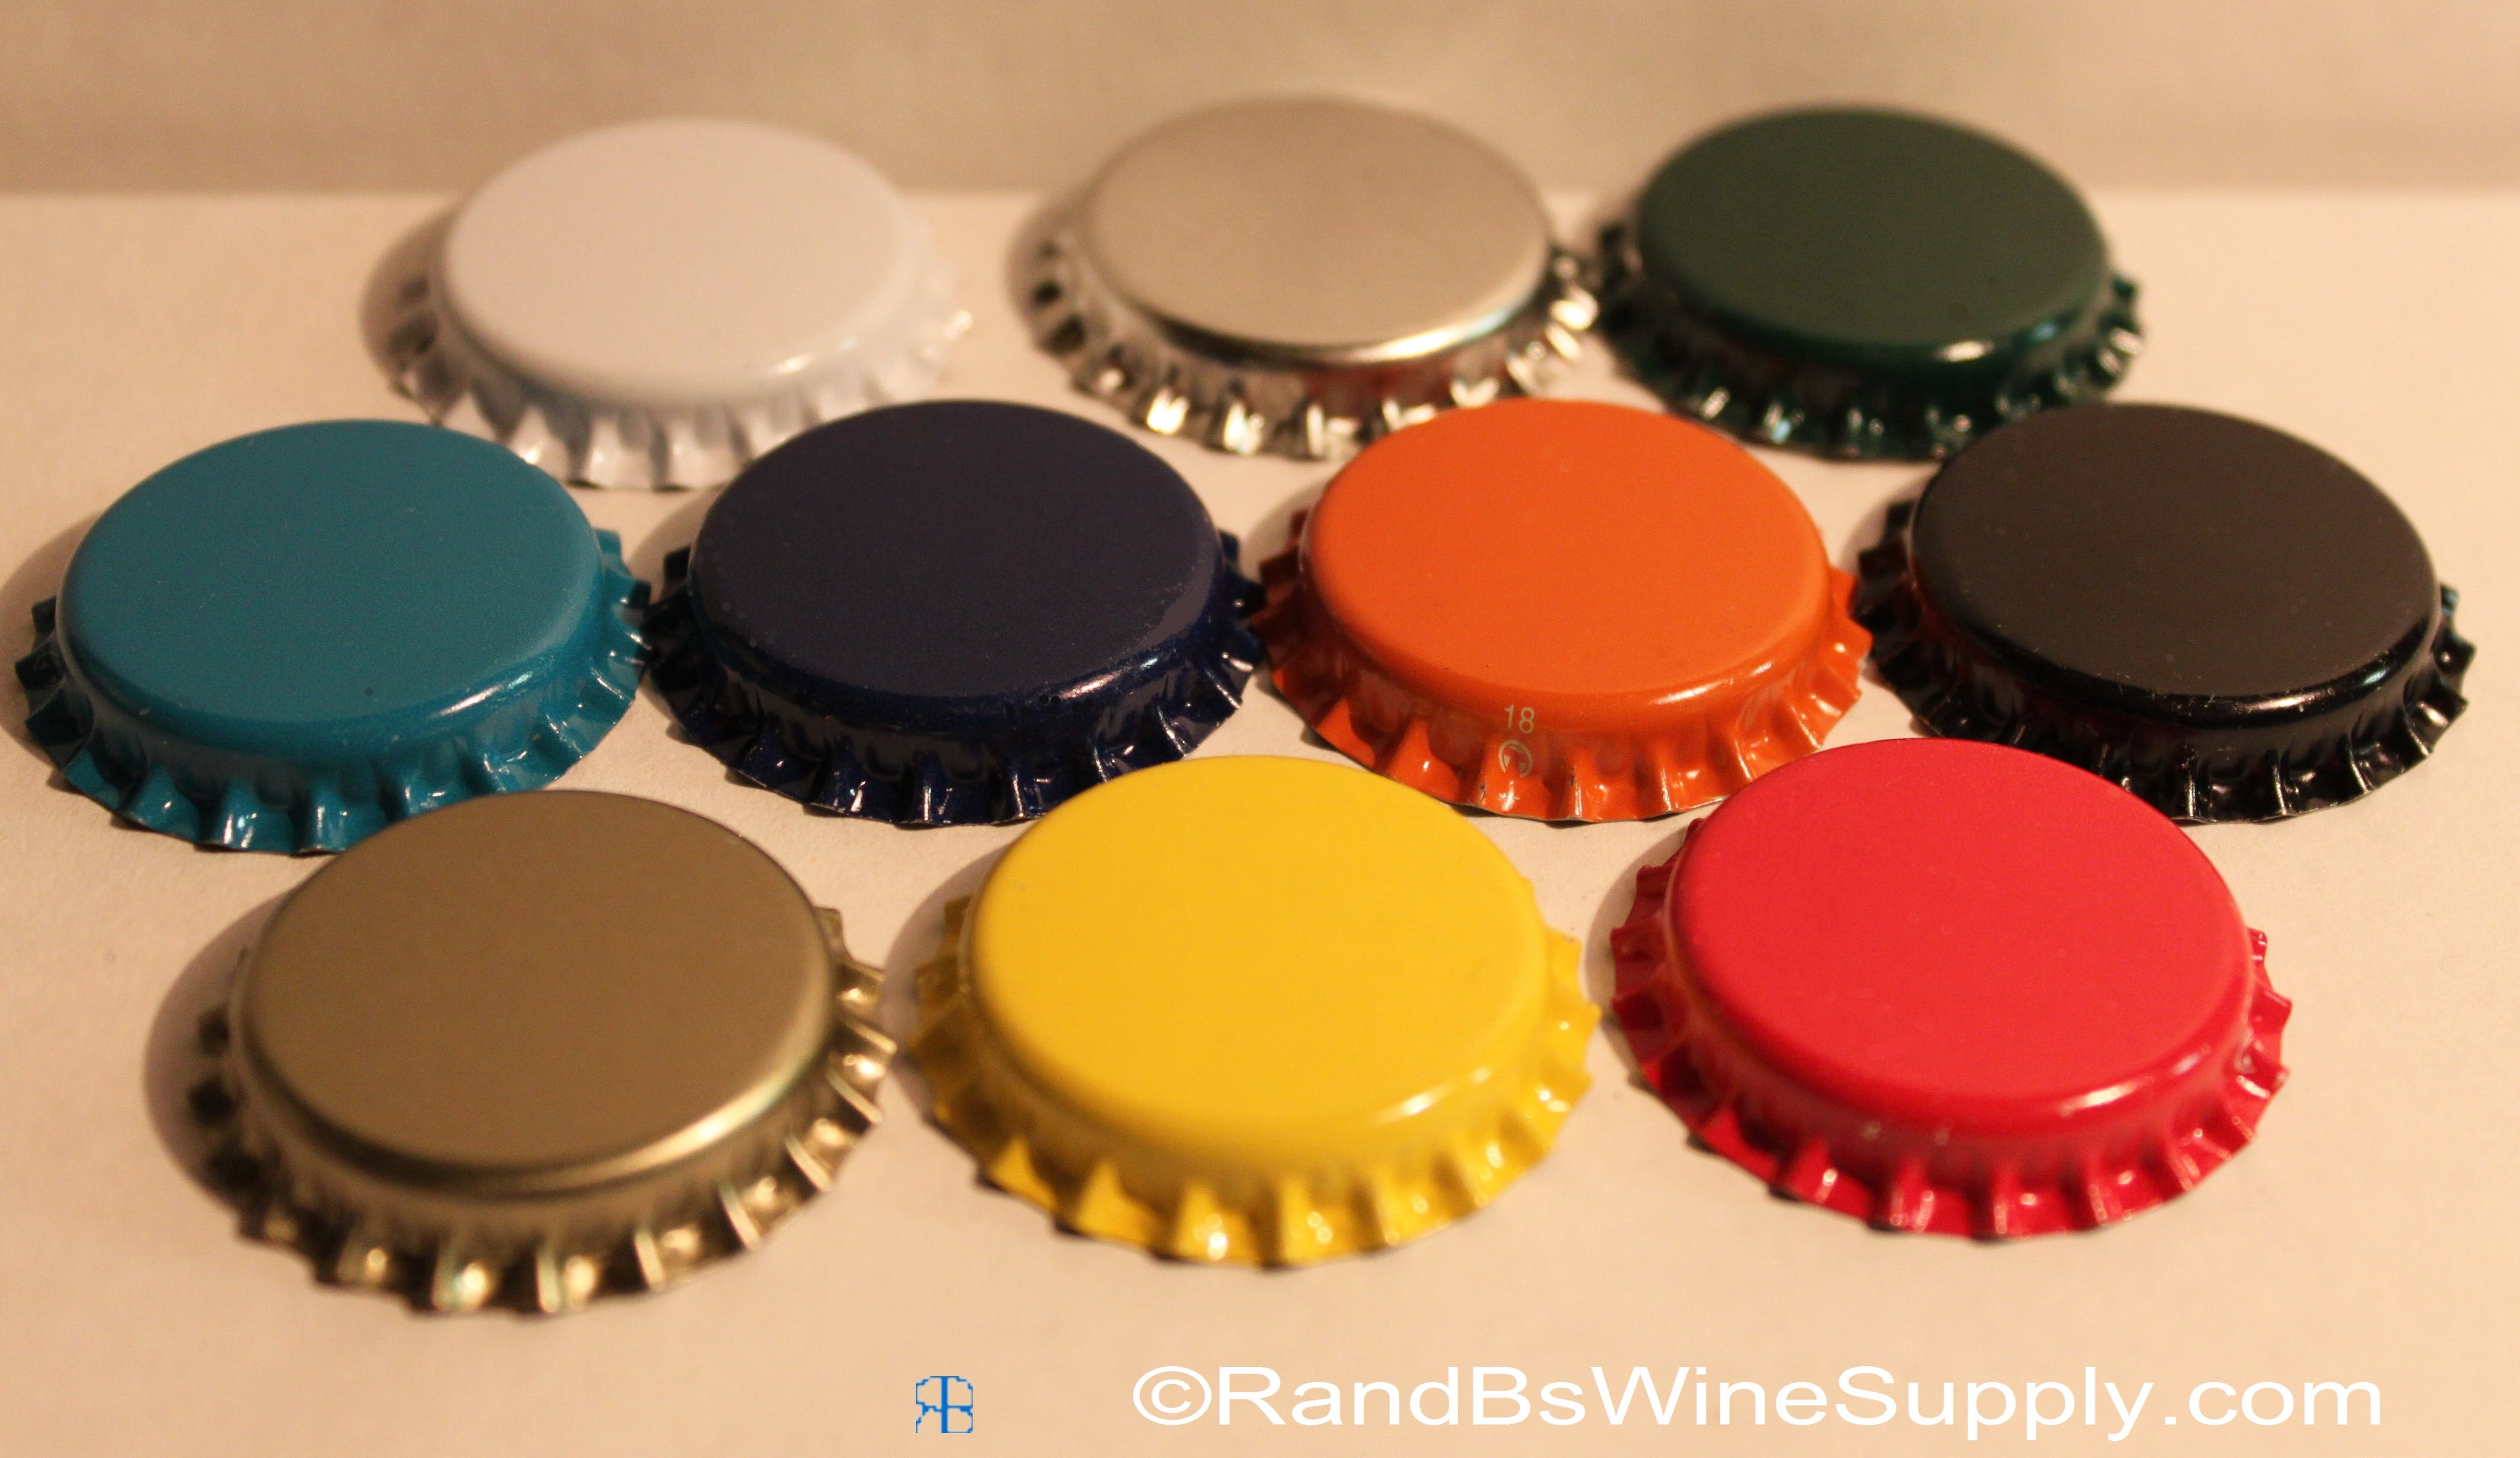 Crown Bottle Caps Bottle cap sold by R and B's Wine Supply